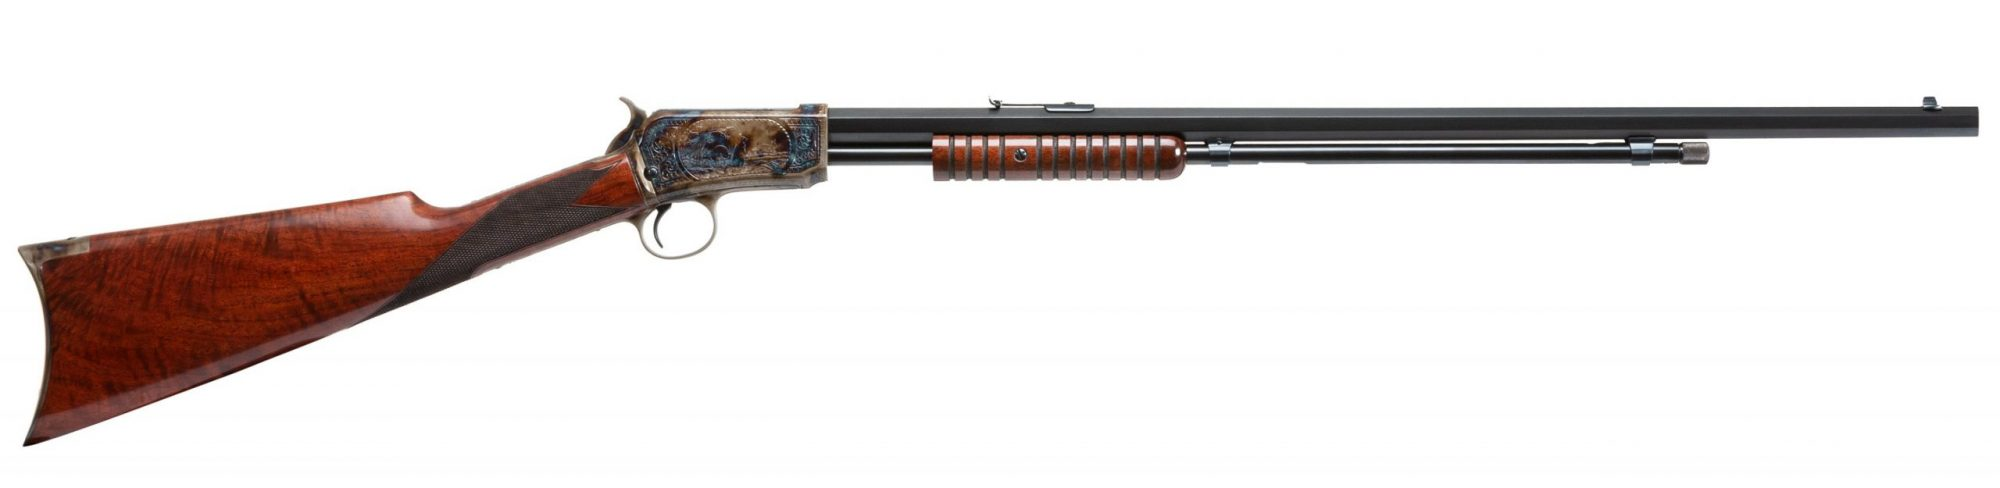 Photo of a restored engraved Winchester Model 1890 rifle by Turnbull Restoration of Bloomfield, NY